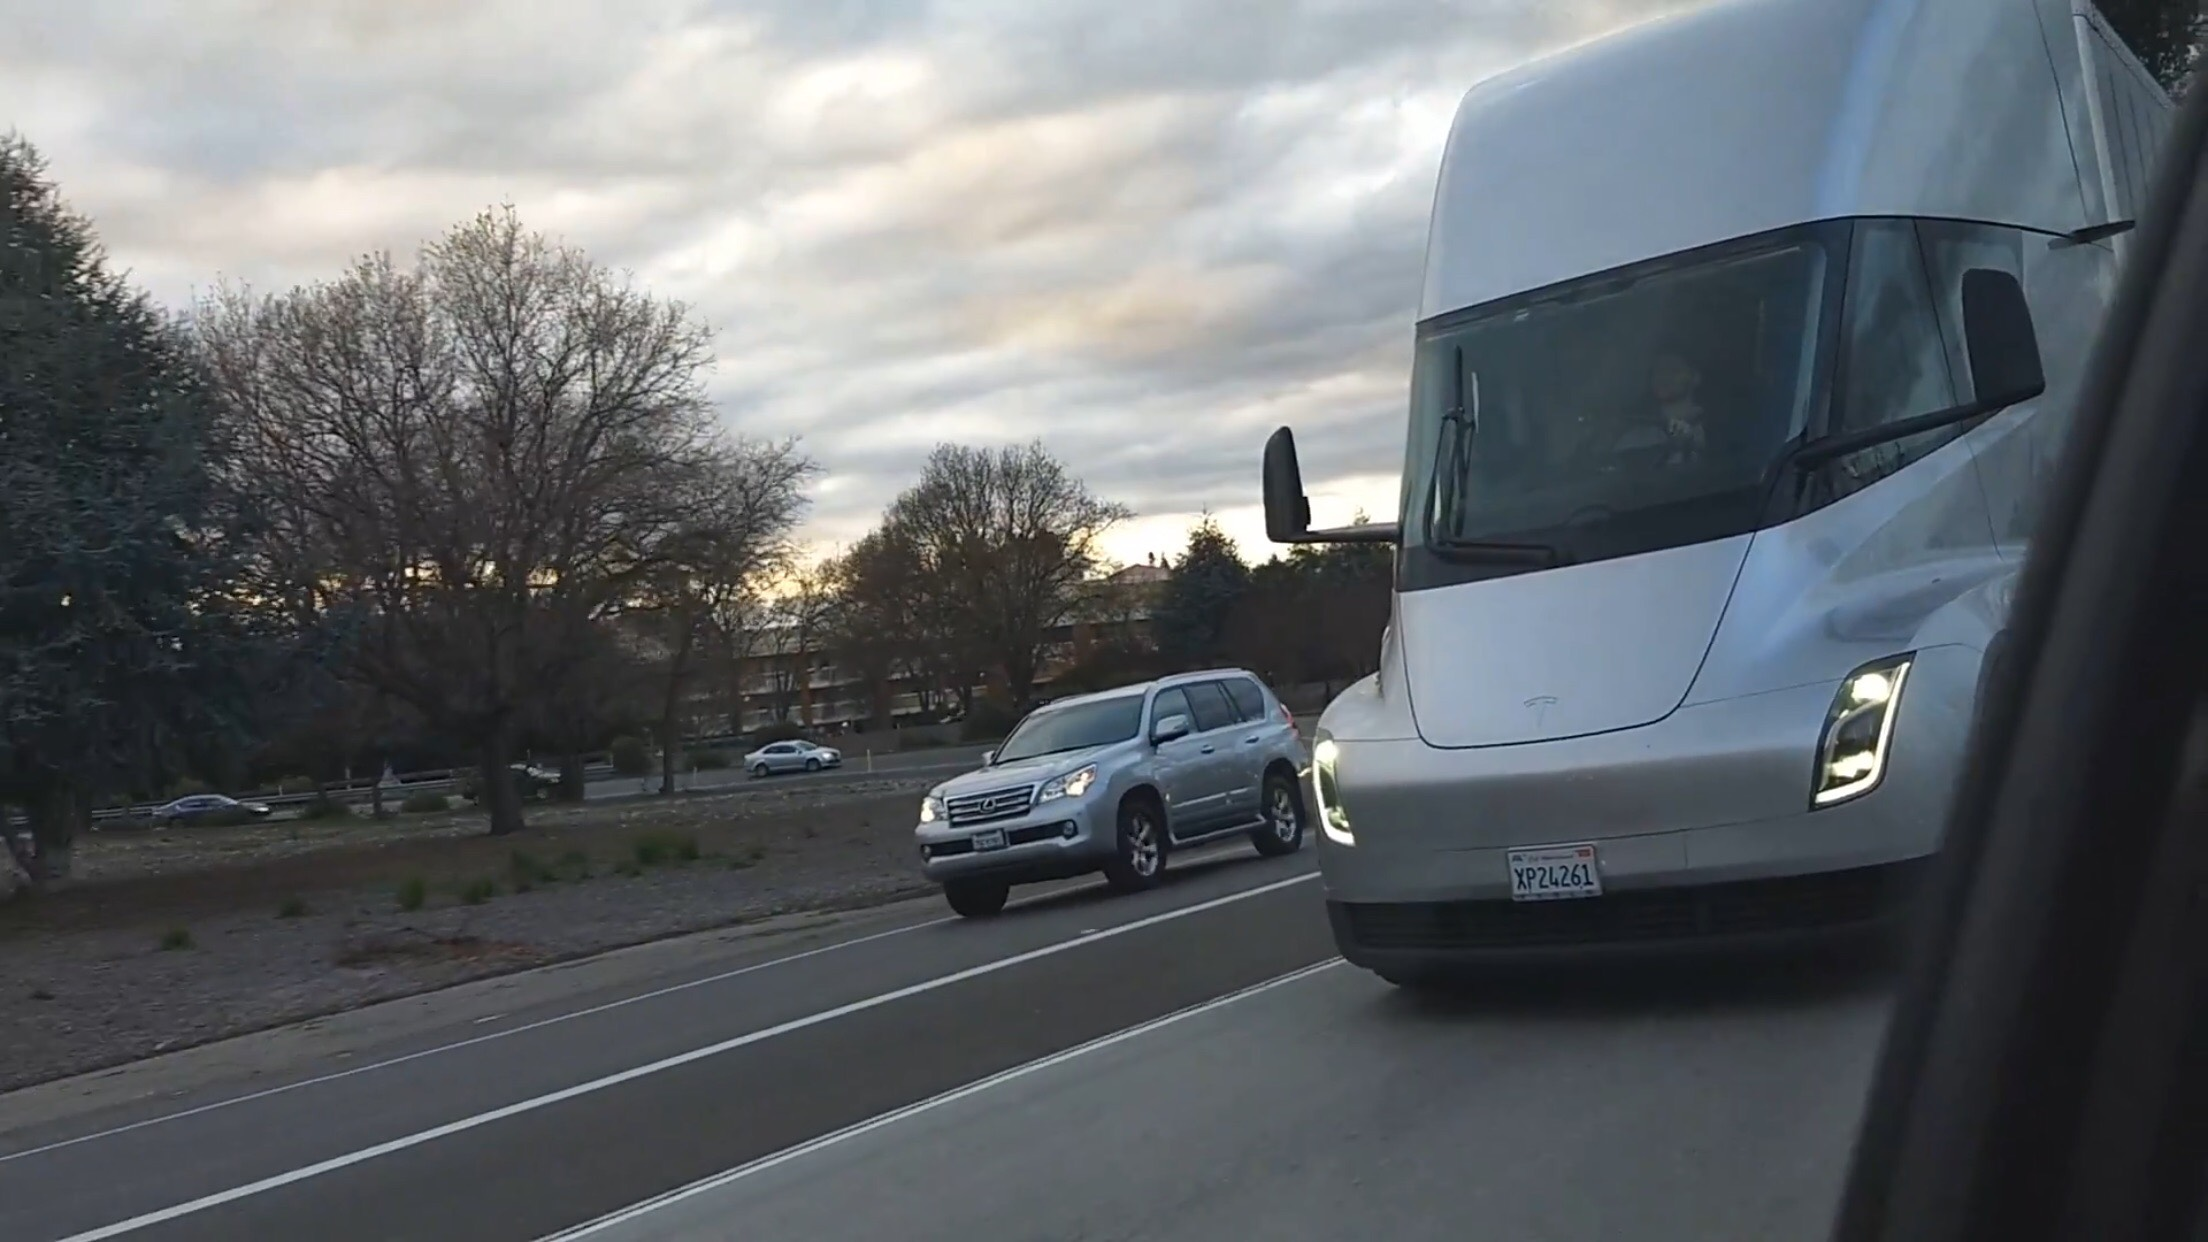 Tesla Semi chilling highway 3 [Credit: Sergey MoldovanAmerican/YouTube]